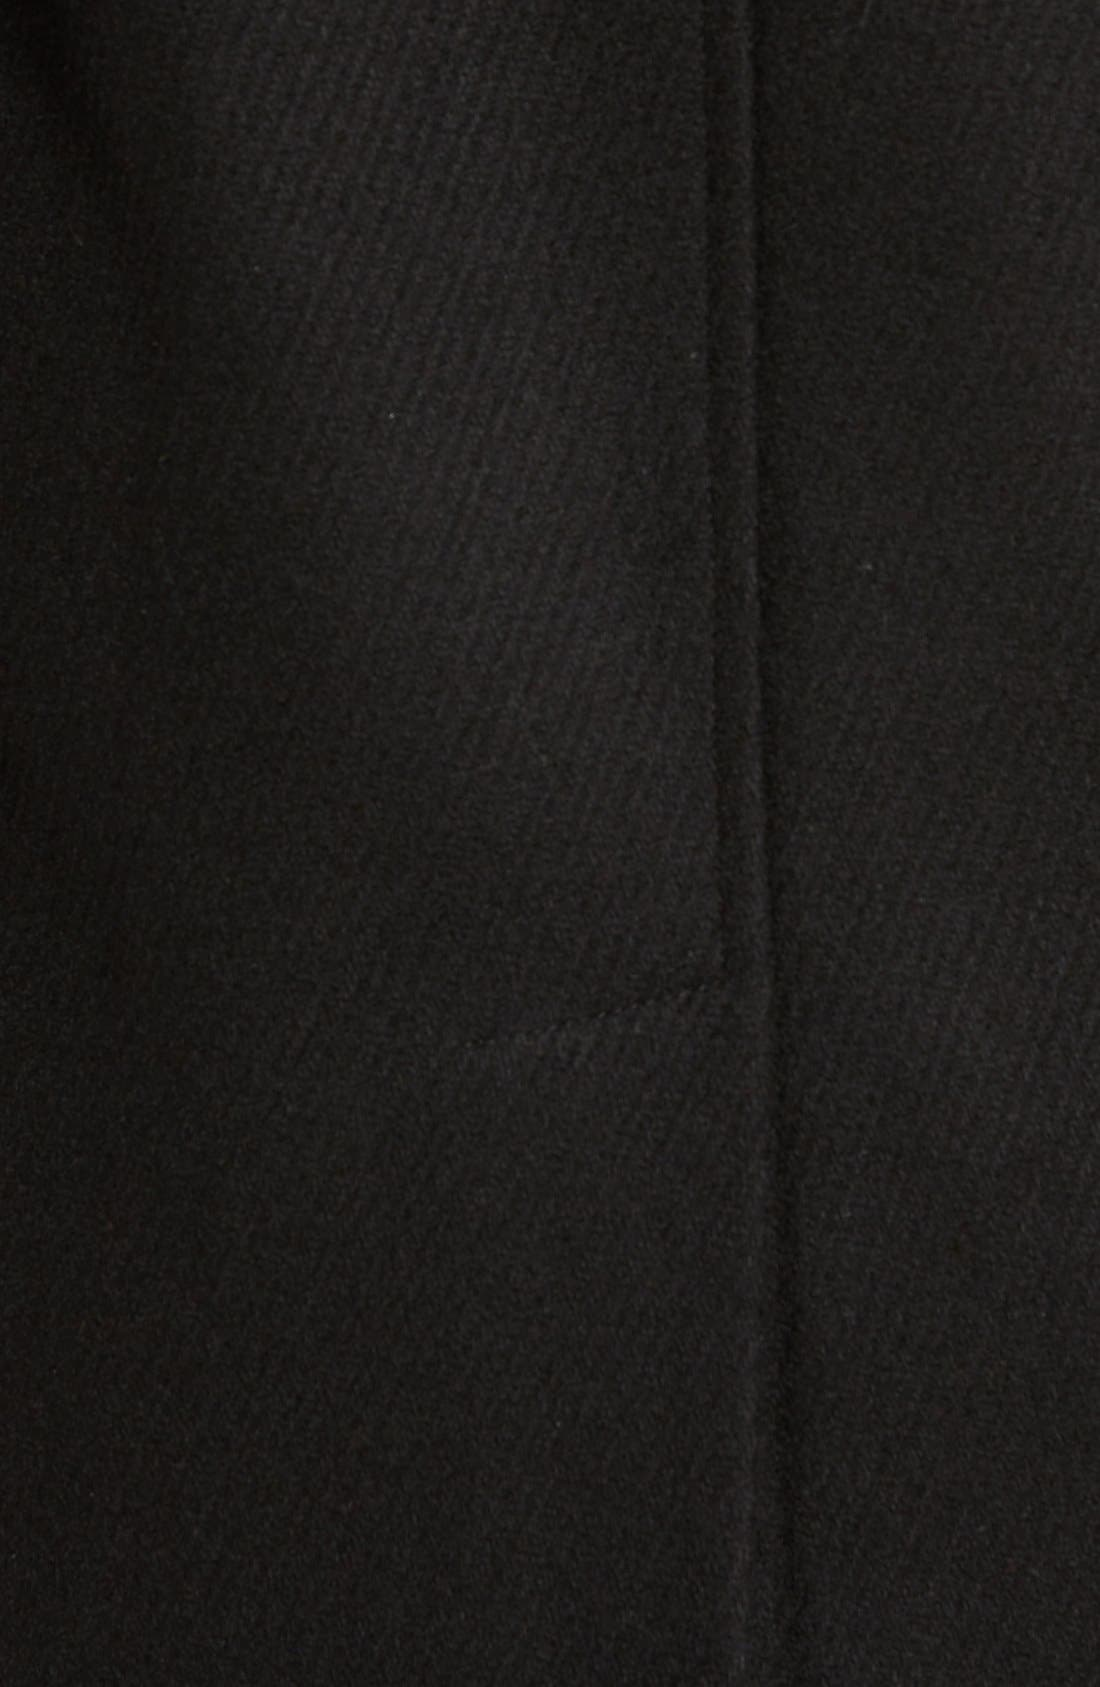 Cole Haan Hooded Duffle Coat with Faux Fur Trim,                             Alternate thumbnail 6, color,                             BLACK